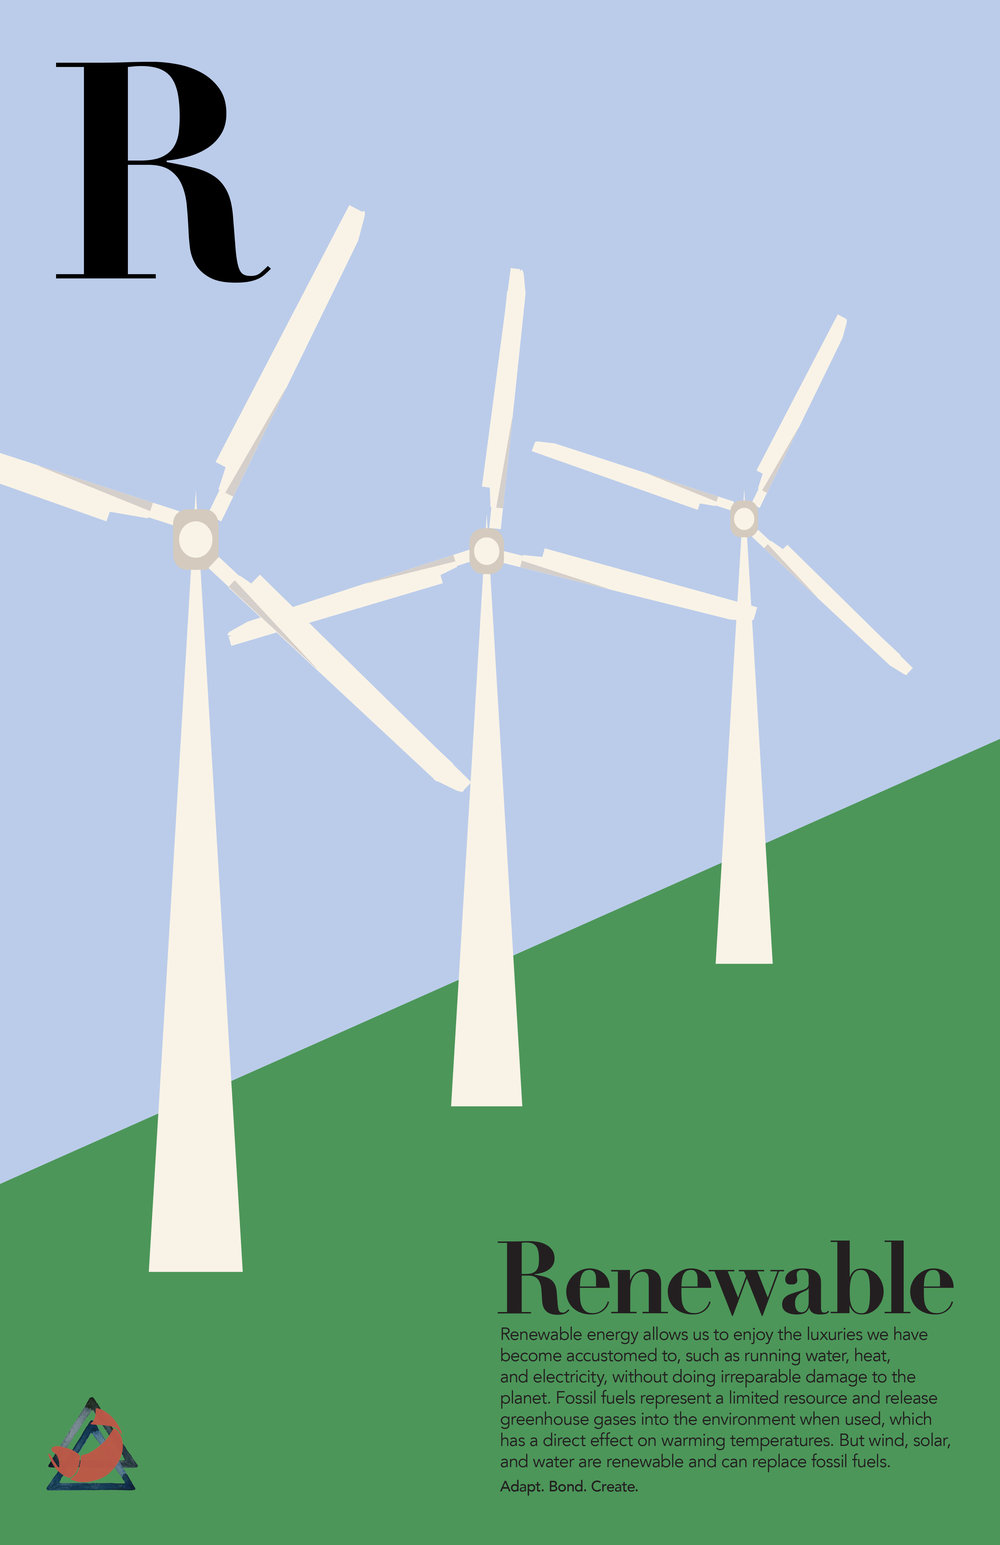 renewable_final copy.jpg